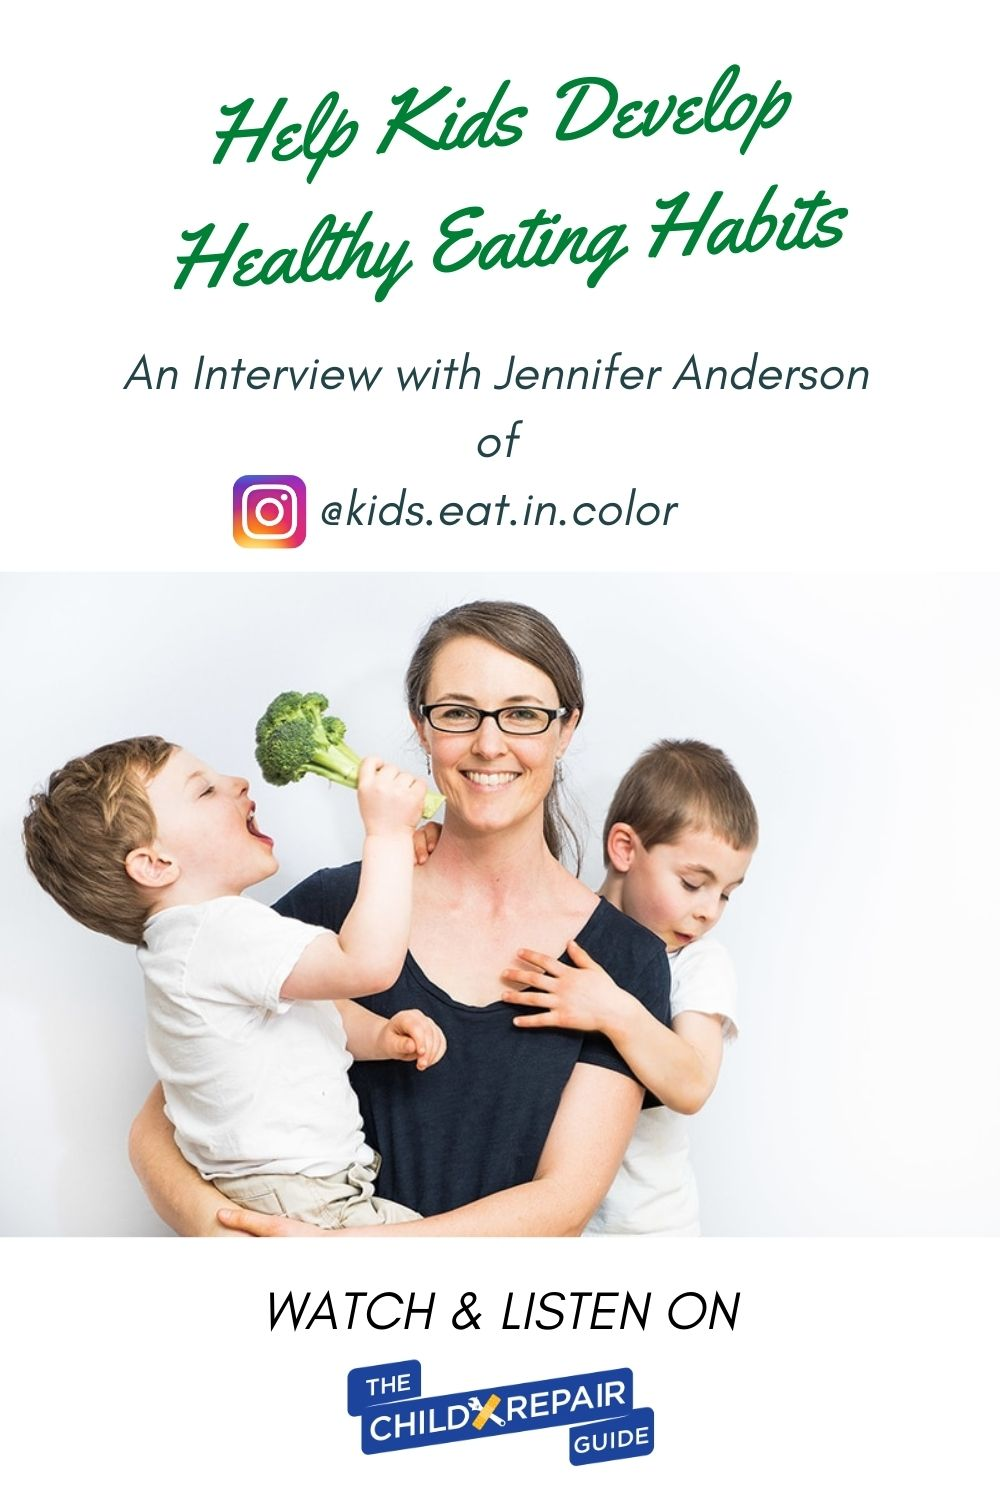 Developing Healthy Eating Habits at Any Age - with Jennifer Anderson of @kids.eat.in.color